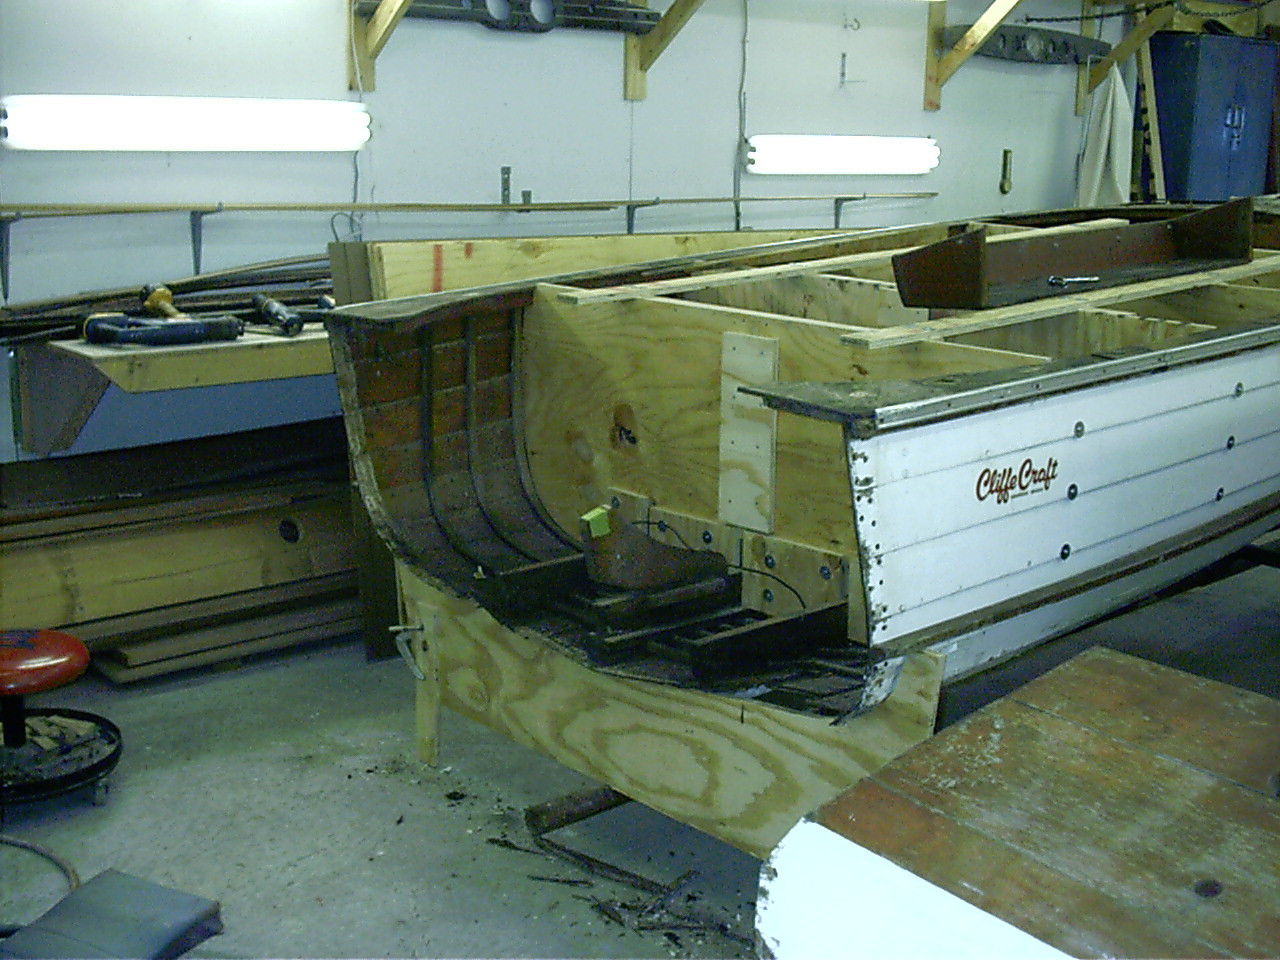 Starboard view of old transom removed.